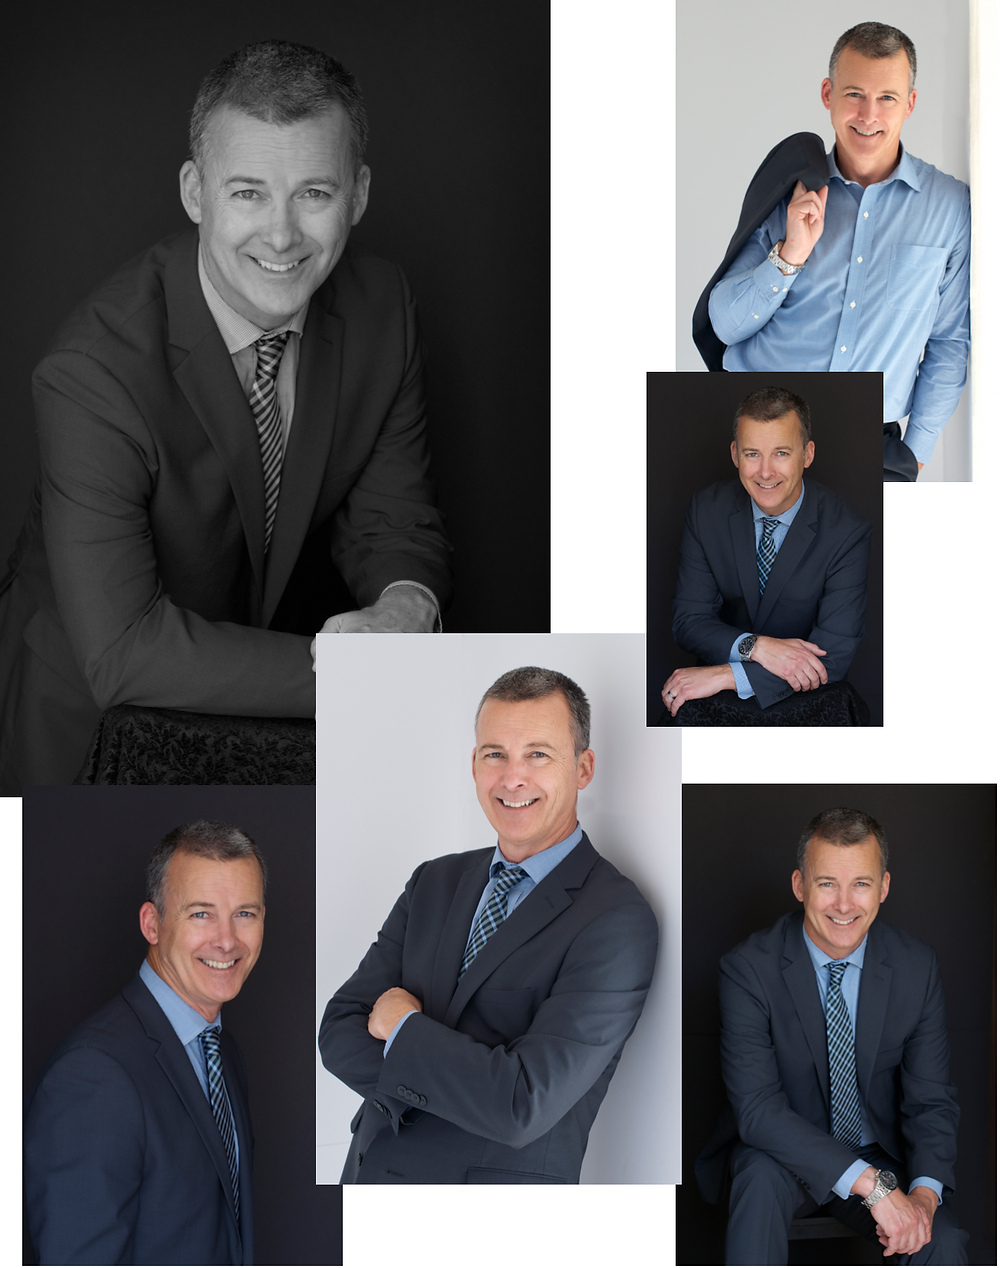 How to get the most from your professional headshots session